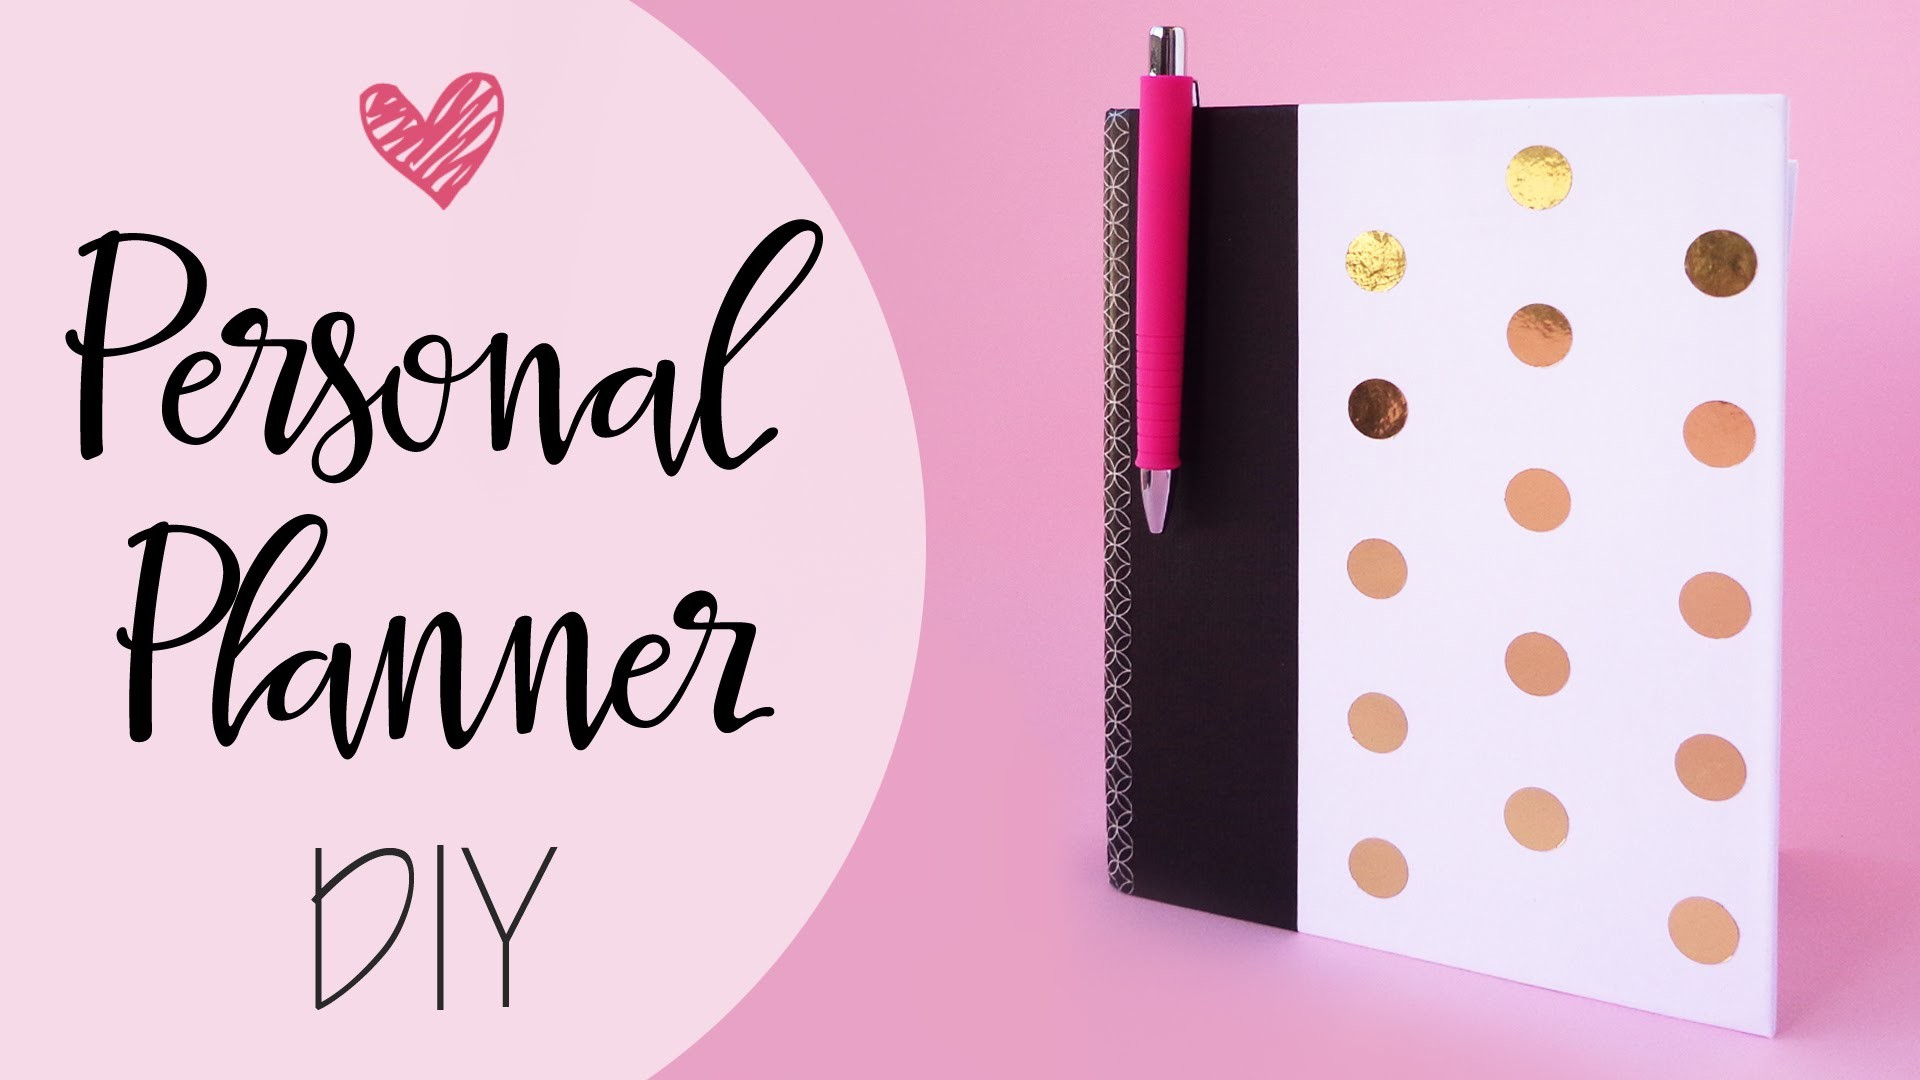 Tuto: Planner Personale fai-da-te - ENG SUBS Personal Planner diy